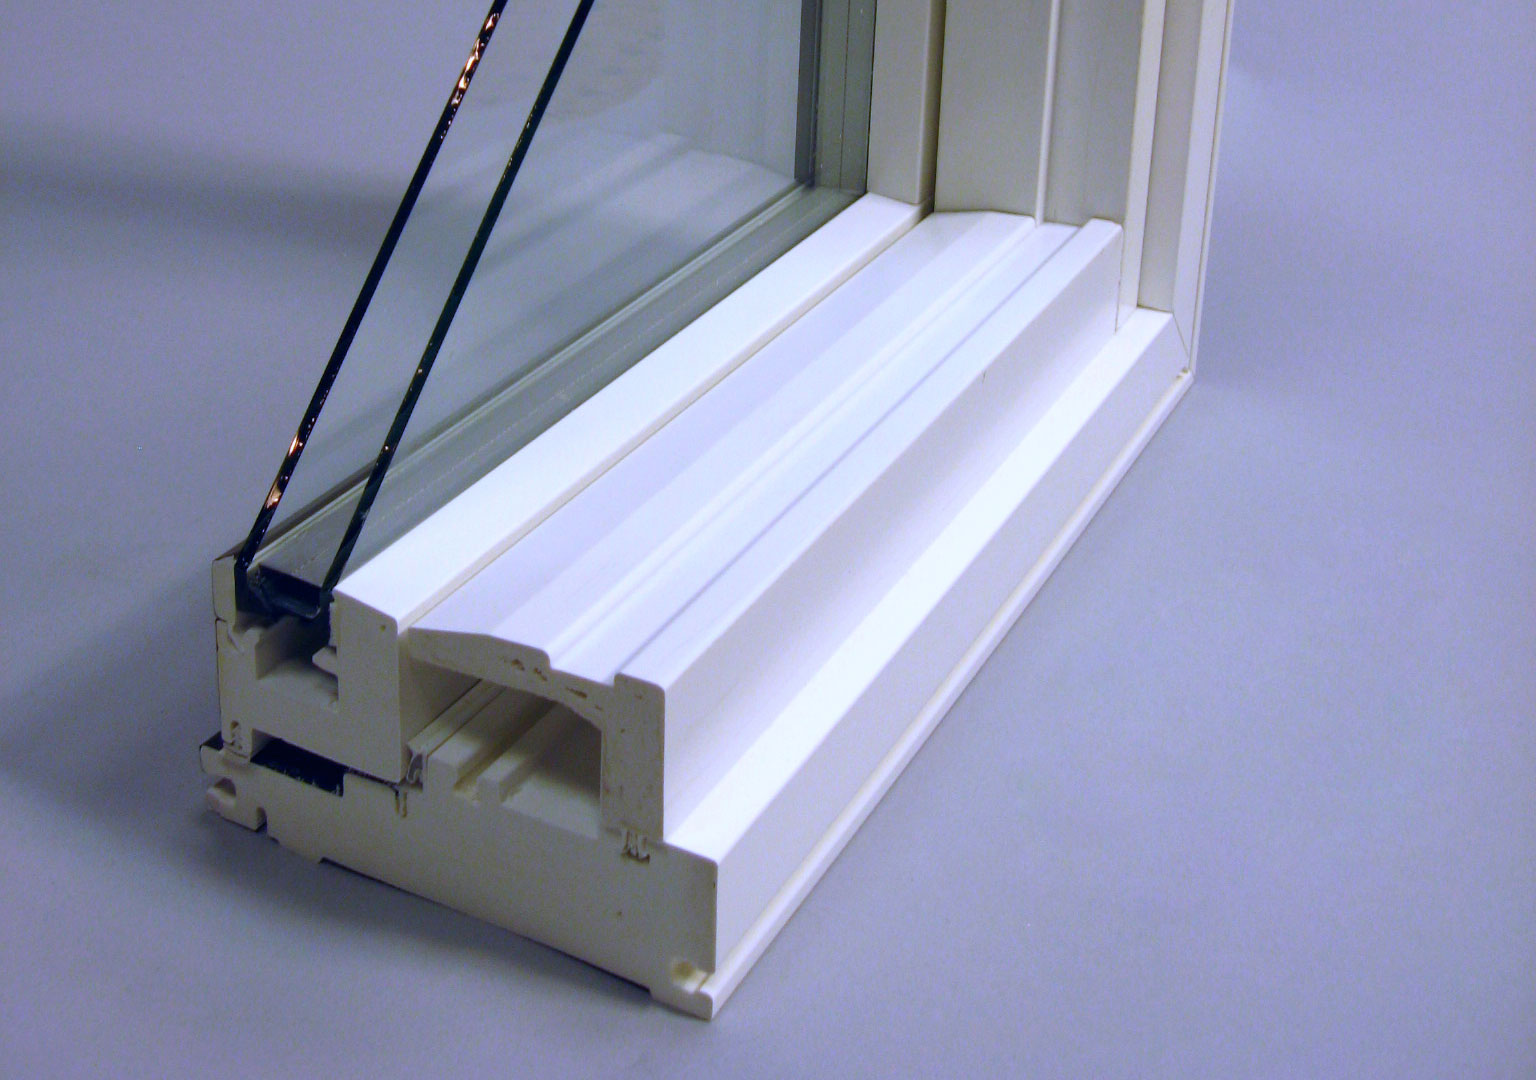 Composites as High Performance Building Solutions - Green Building ...